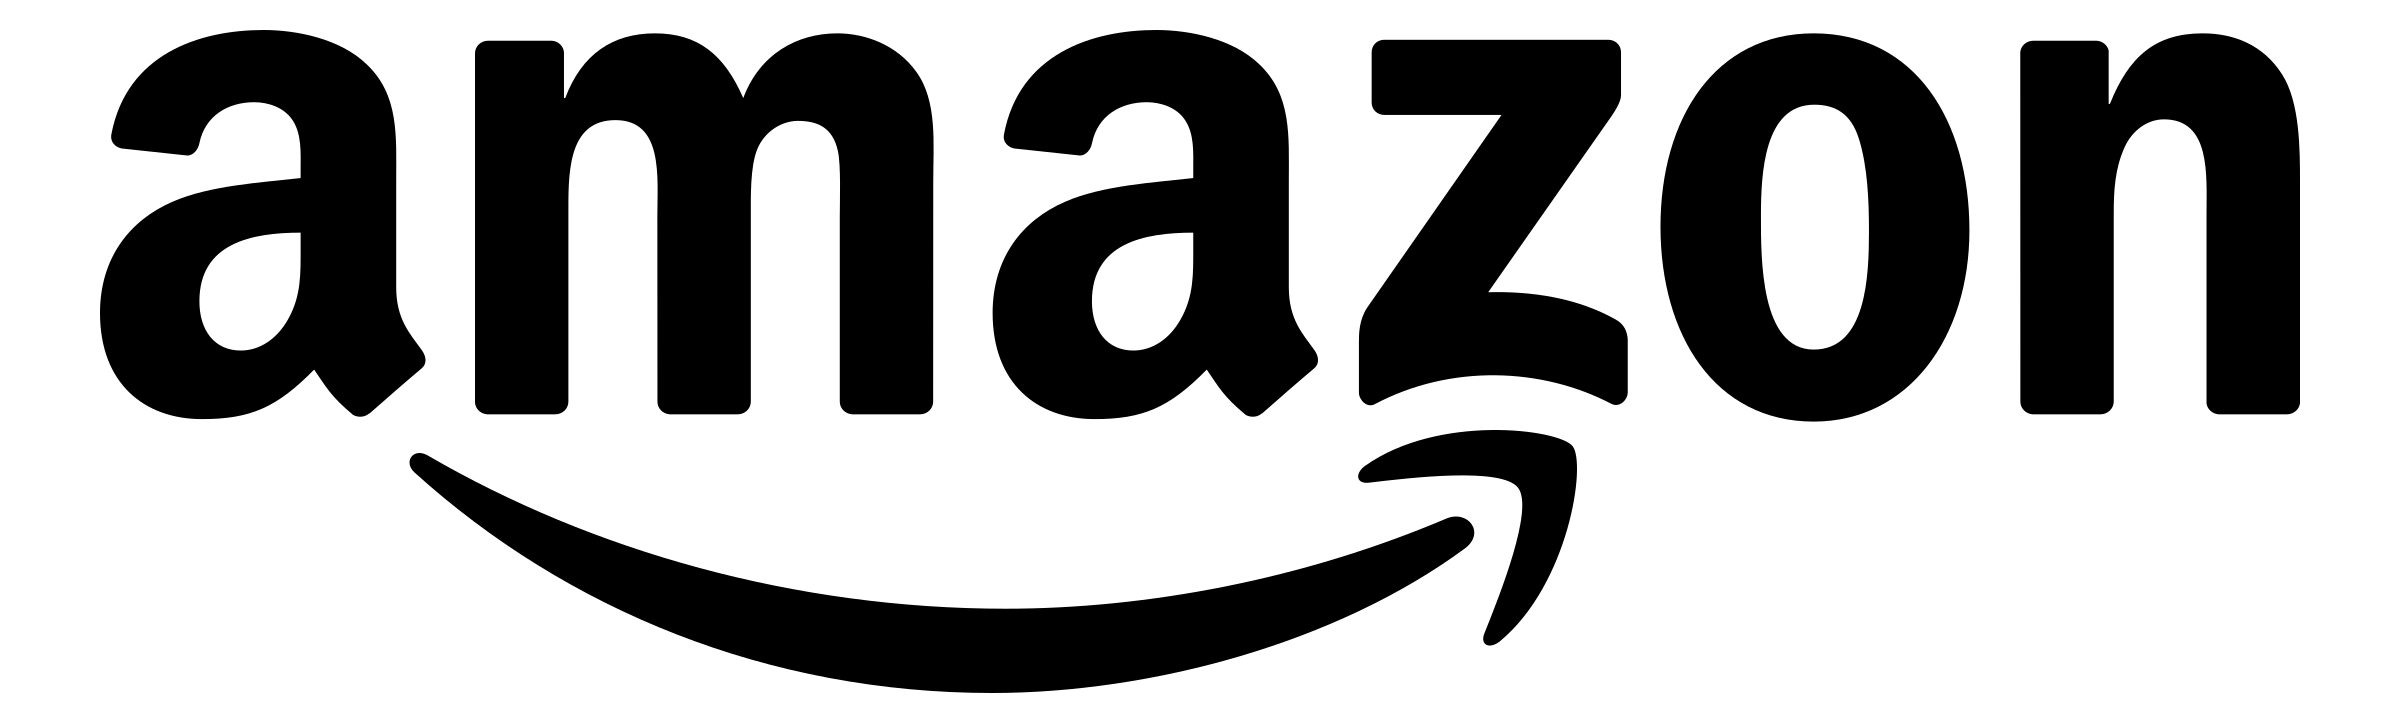 Amazon software engineering salary negotiation